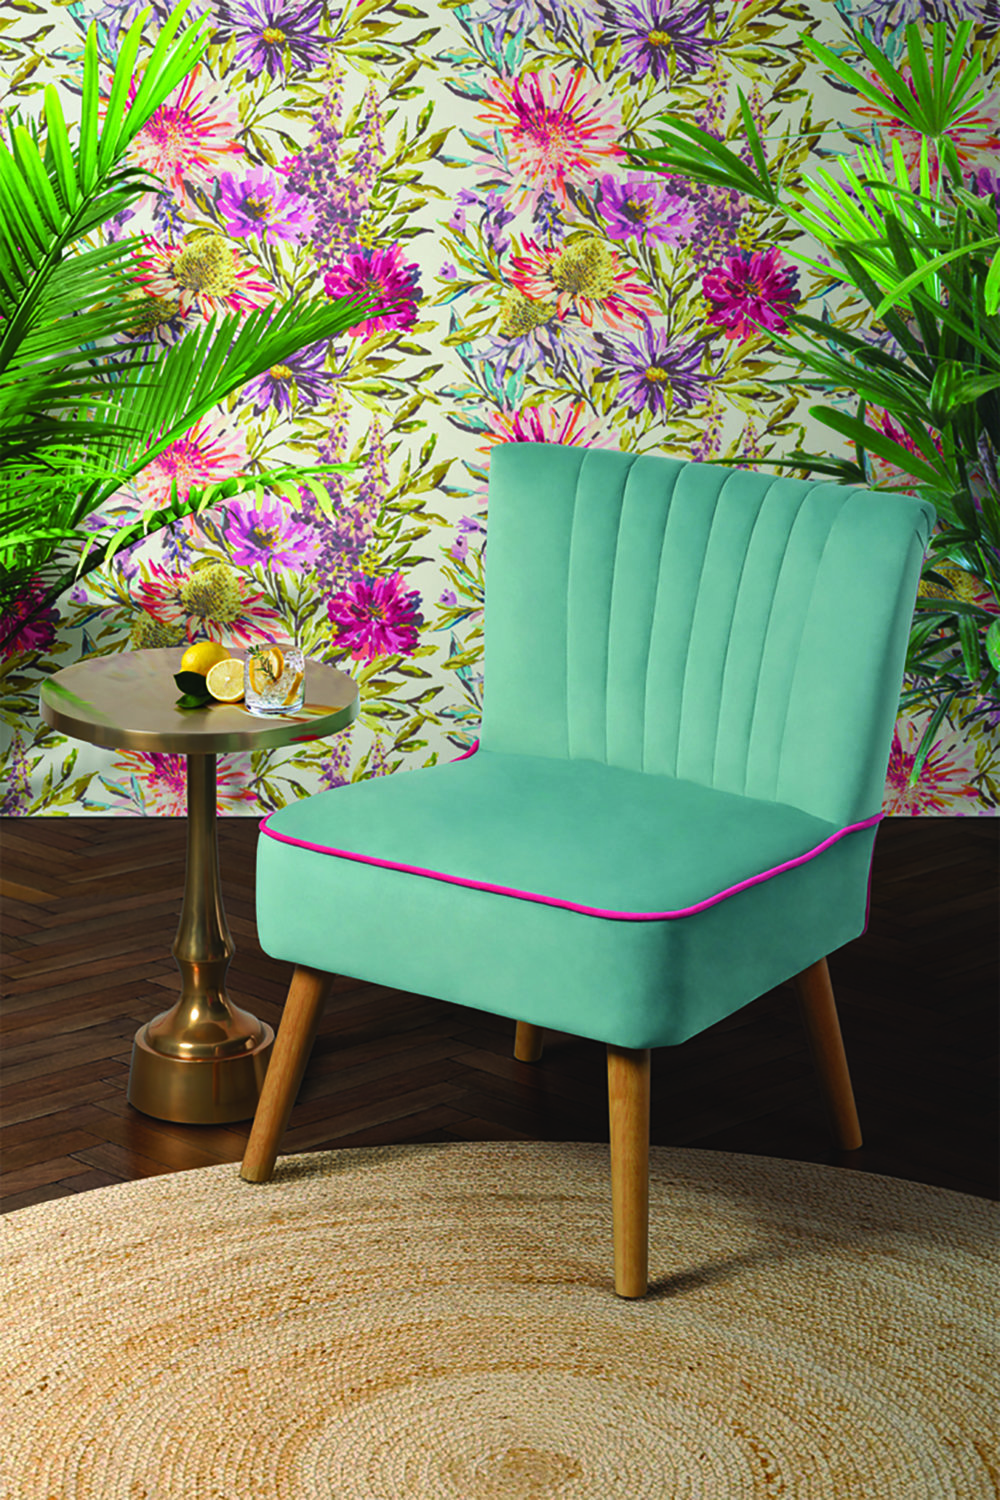 LOLA OYSTER AQUA Retro Chair - MY Furniture